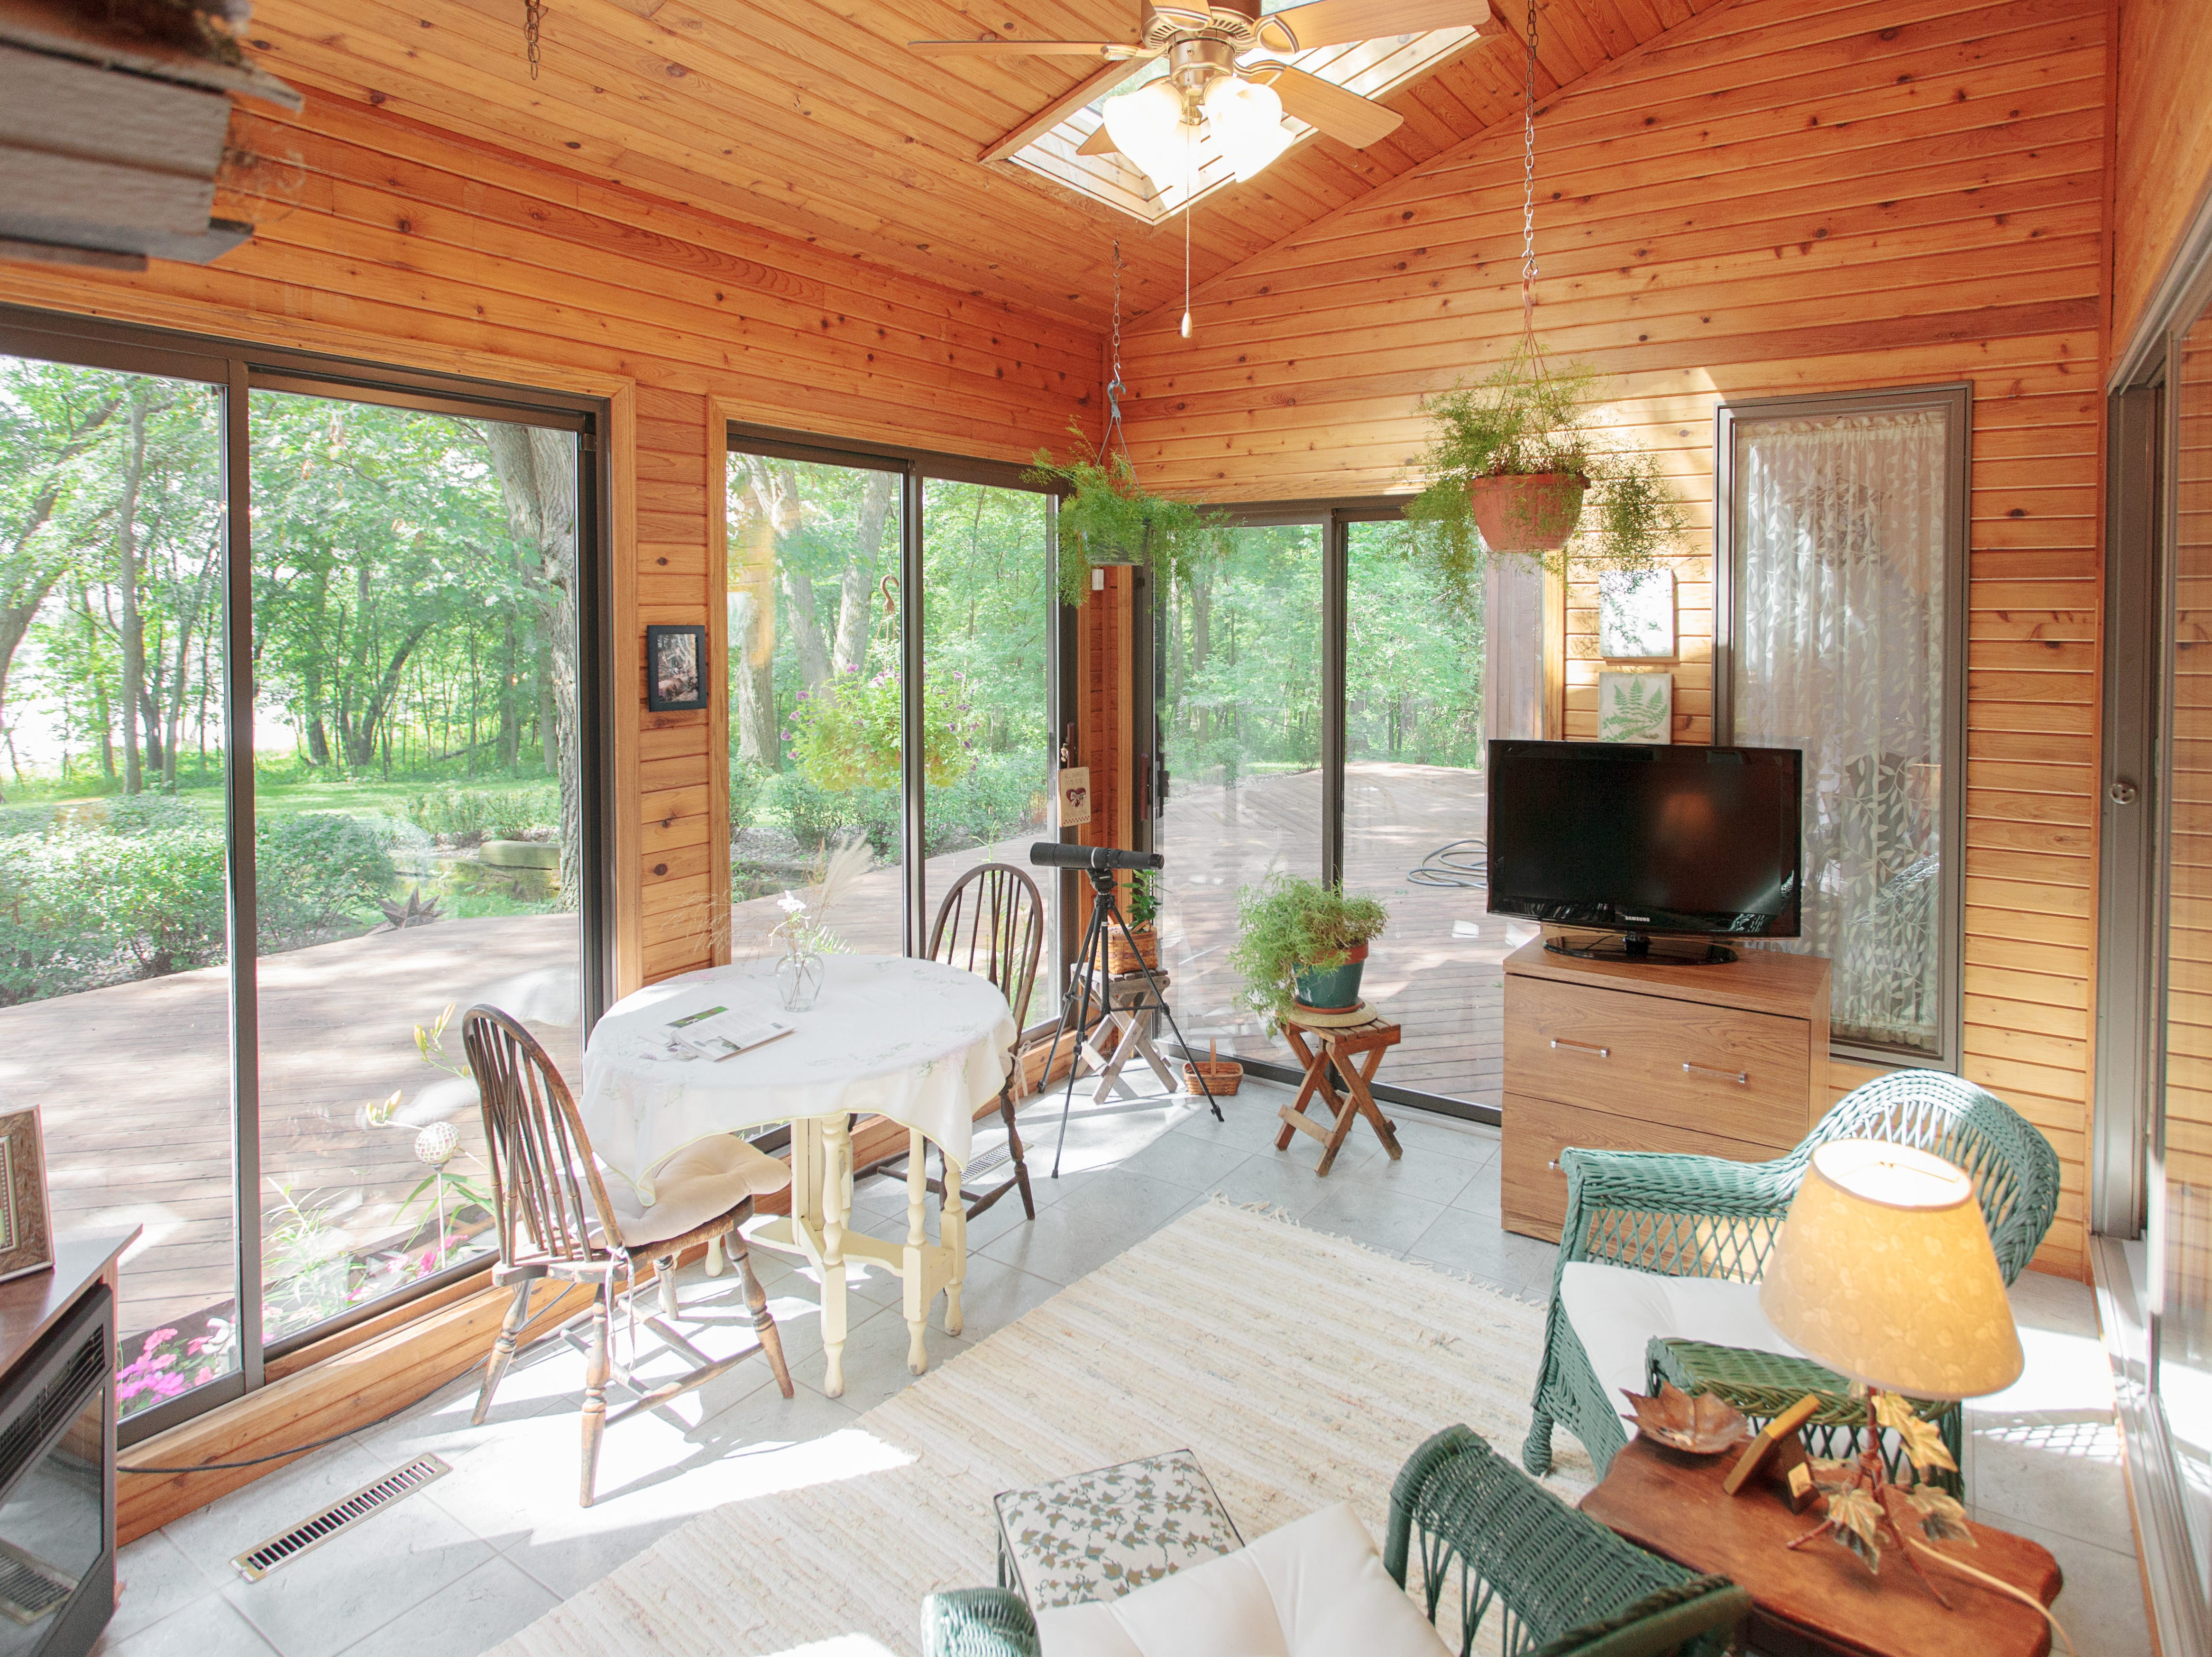 The sun room, with its own vaulted ceiling and skylights, provides the perfect place for taking it all in.